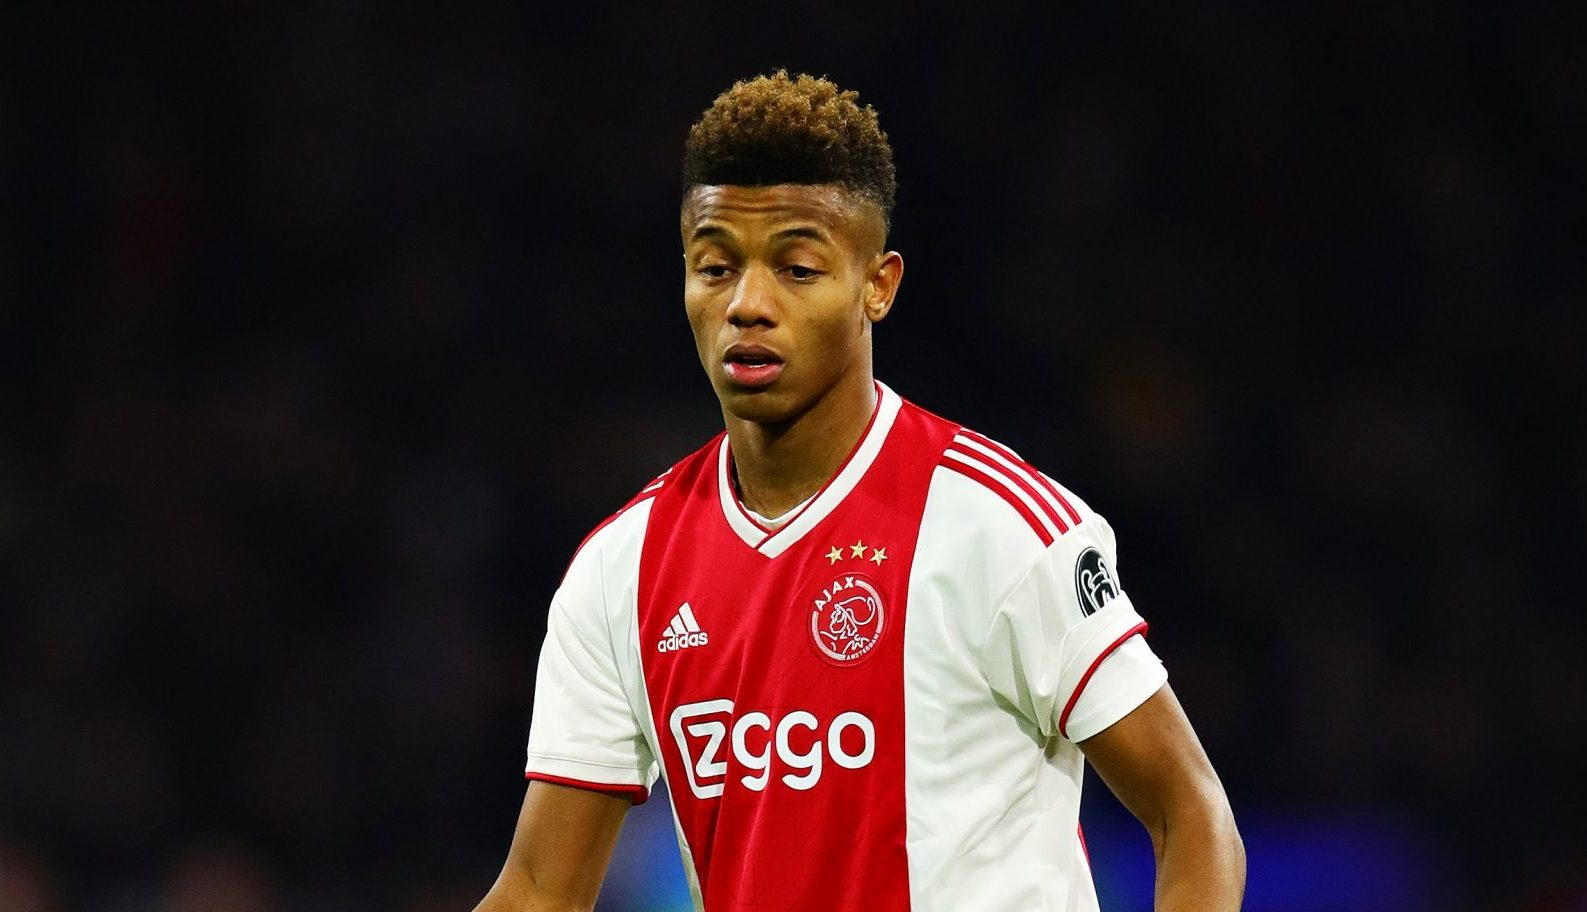 Arsenal in talks to sign £35m Ajax winger David Neres ahead of Manchester United